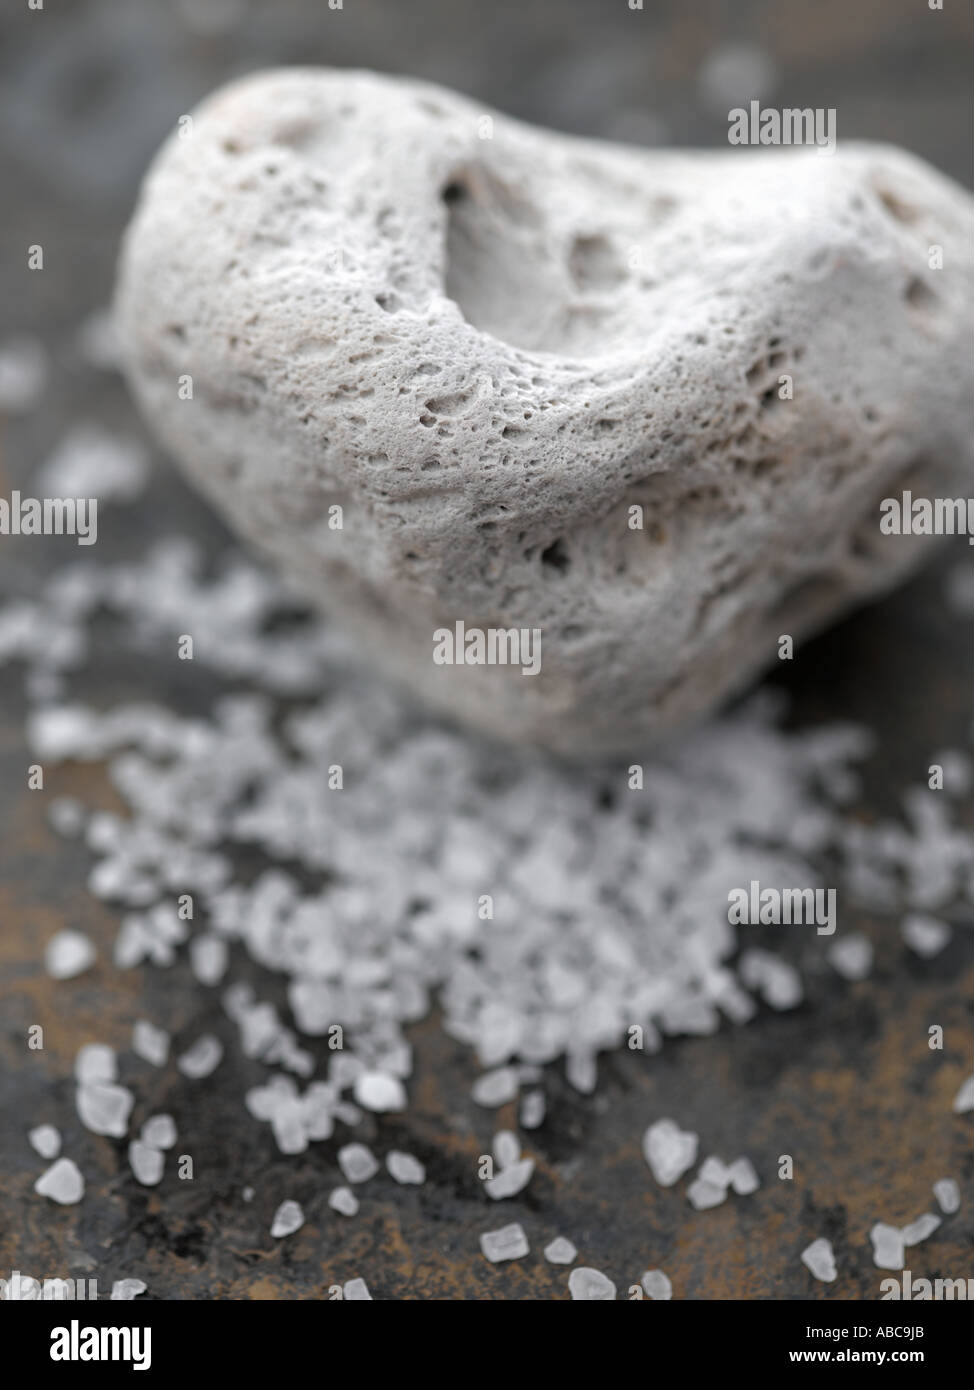 Pumice and dead sea salts - high end Hasselblad 61mb digital image - Stock Image